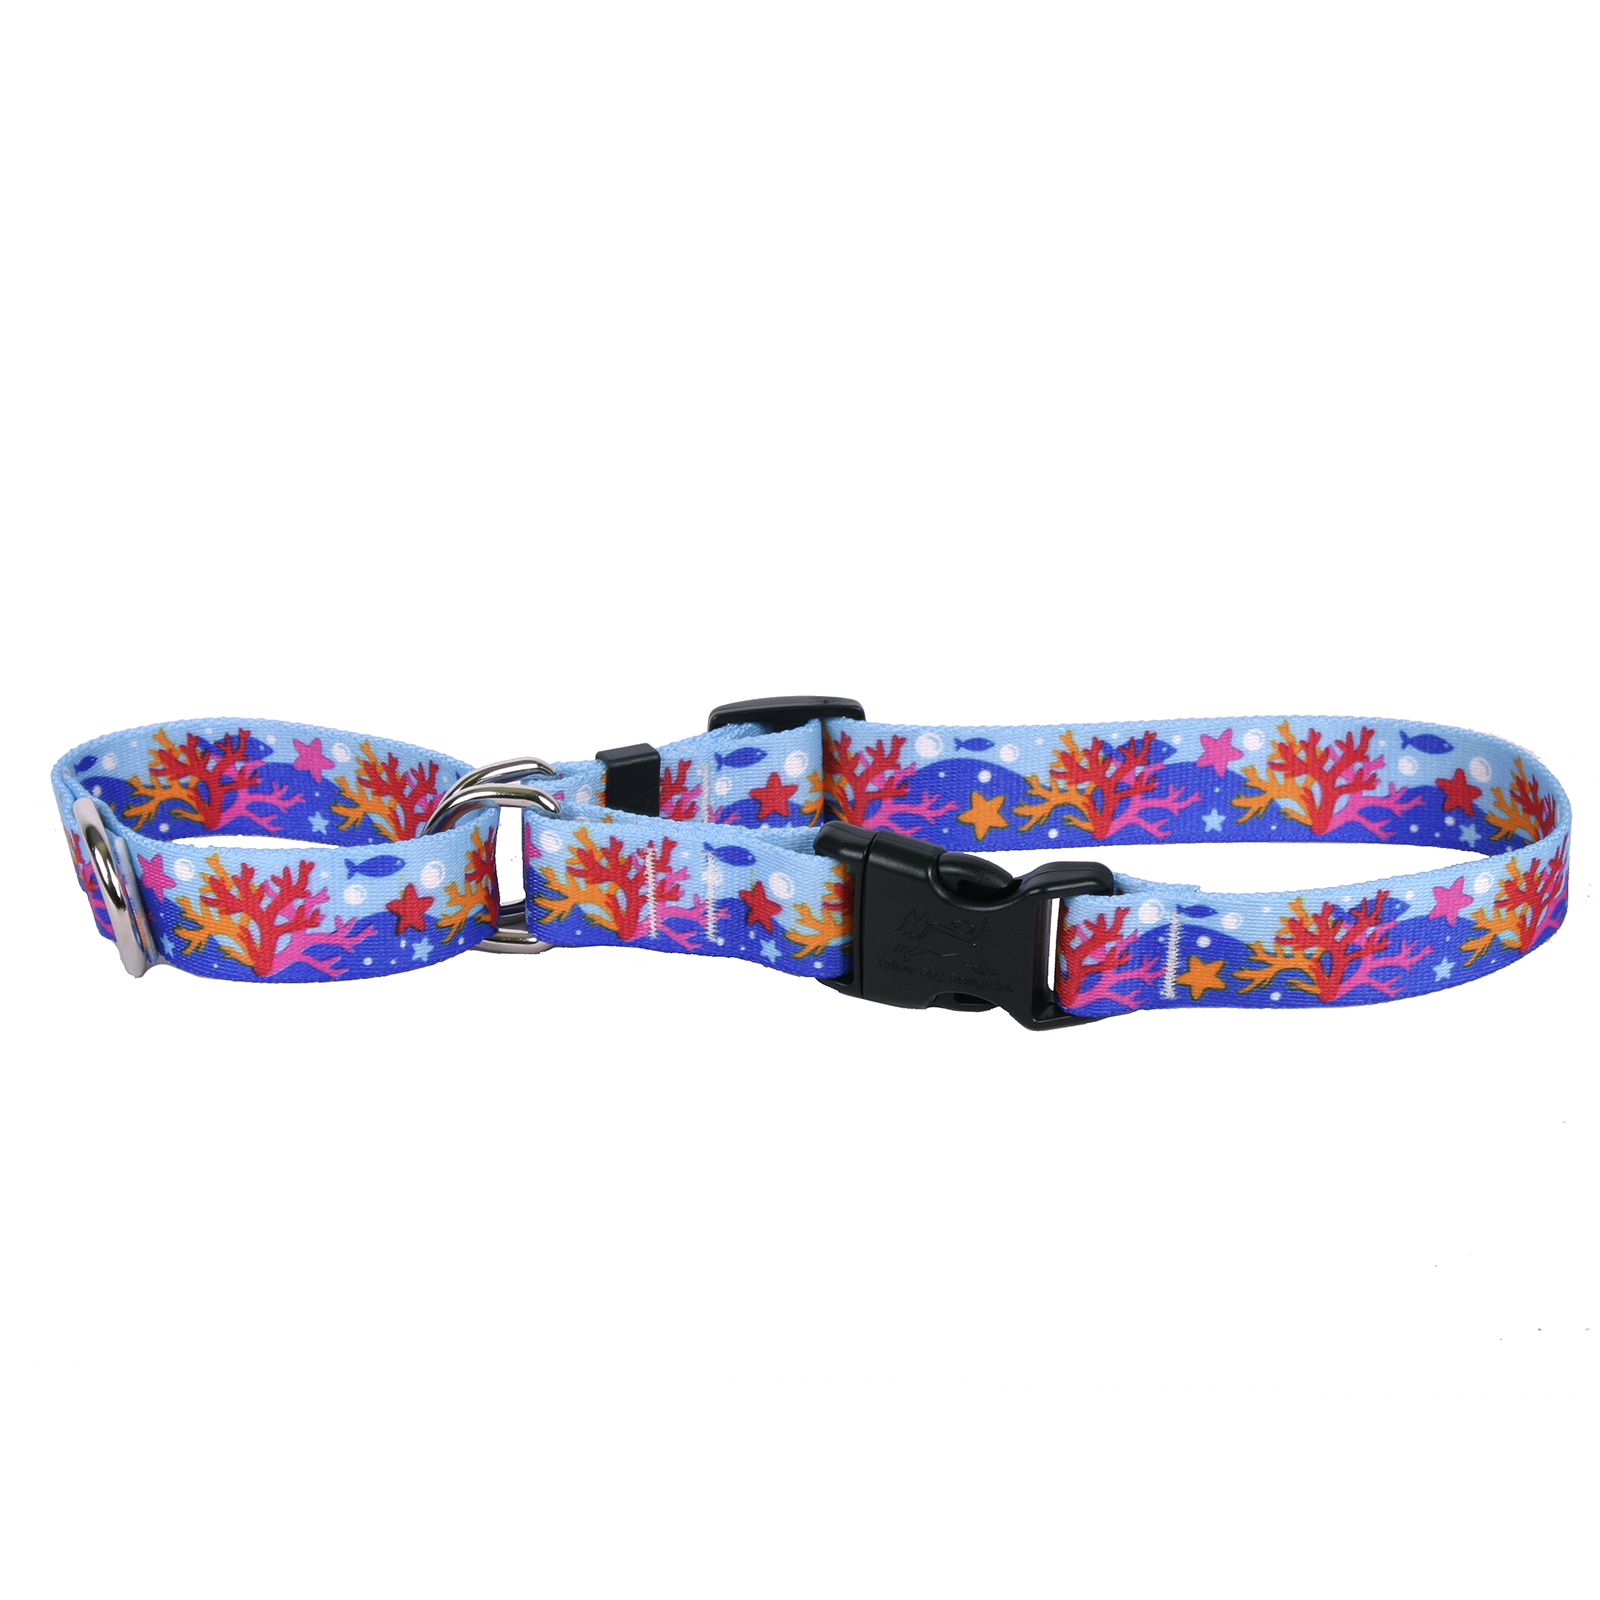 Coral Reef Martingale Collar